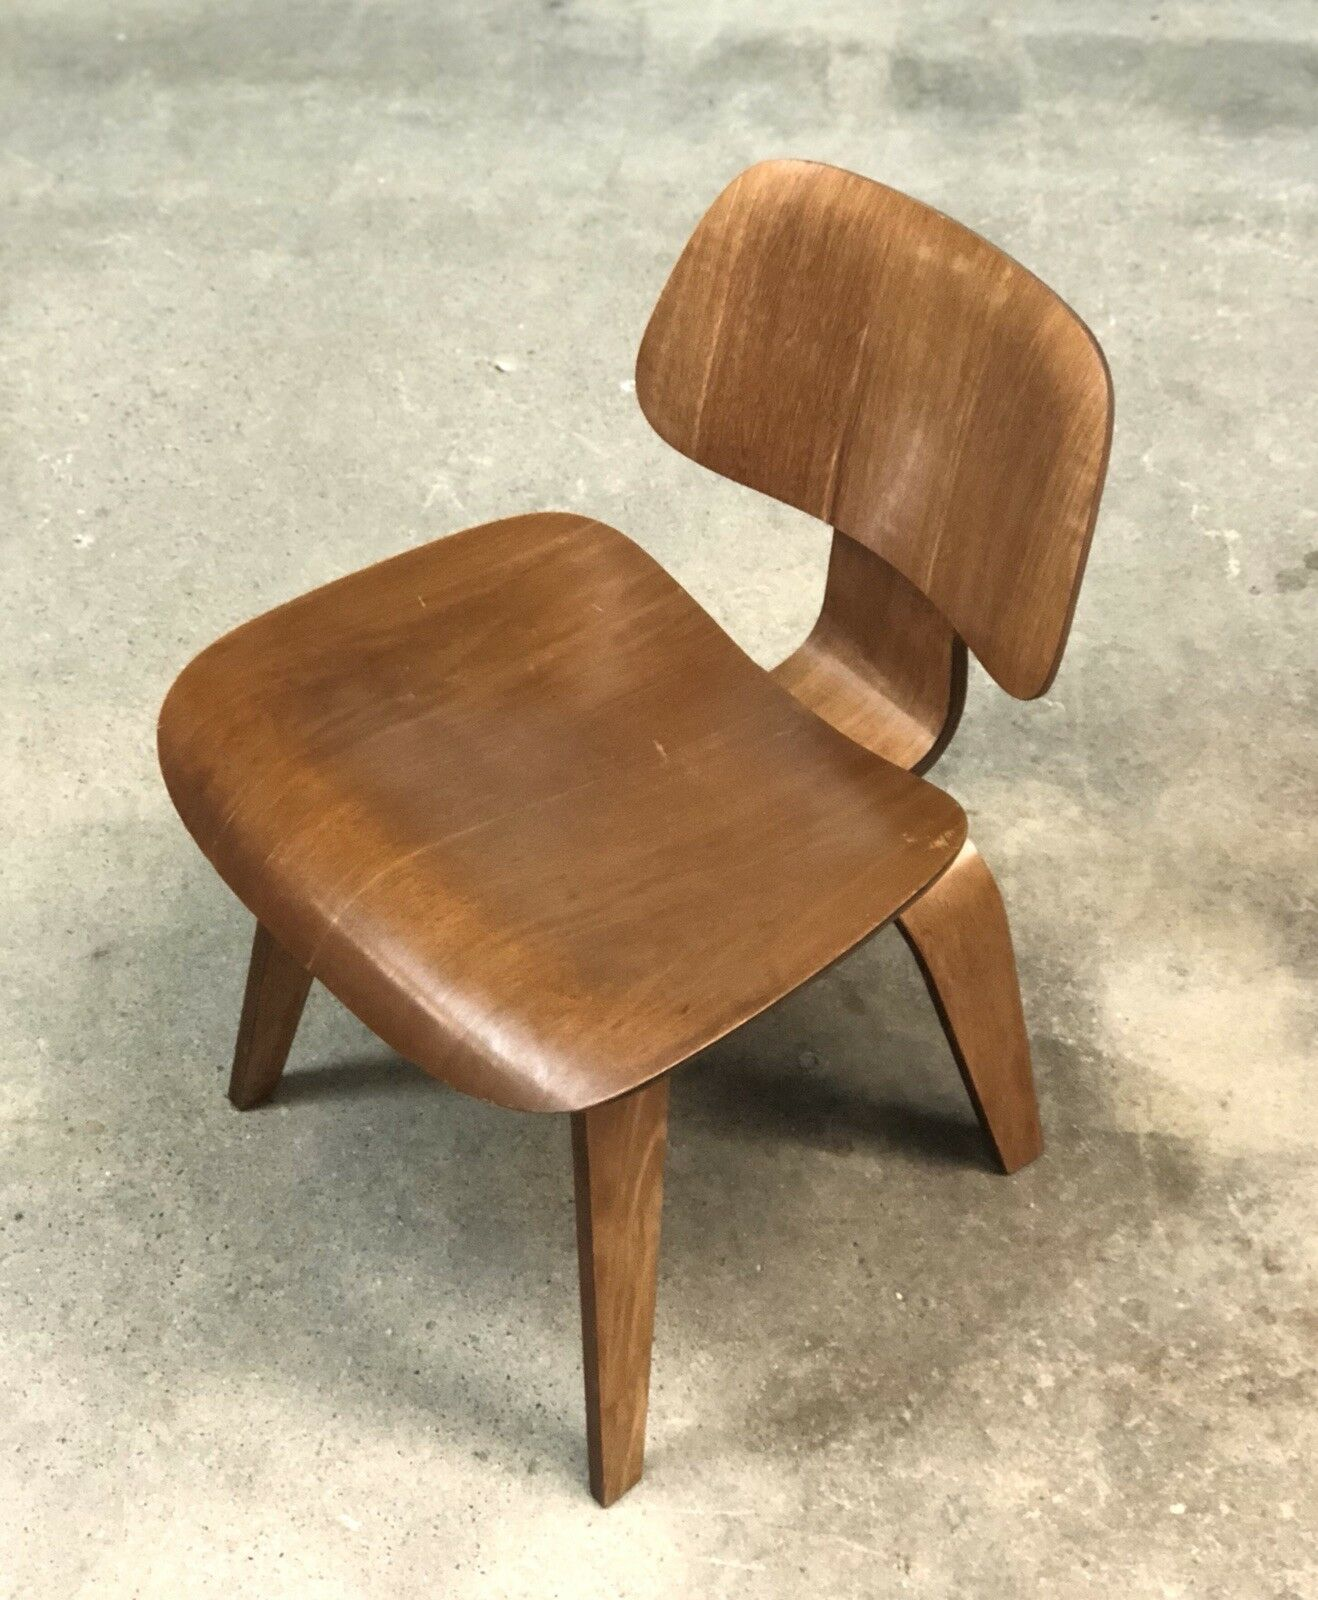 As New Plus Good Chairs Even Yearseames After Make Look Sixty yN08wOvmn